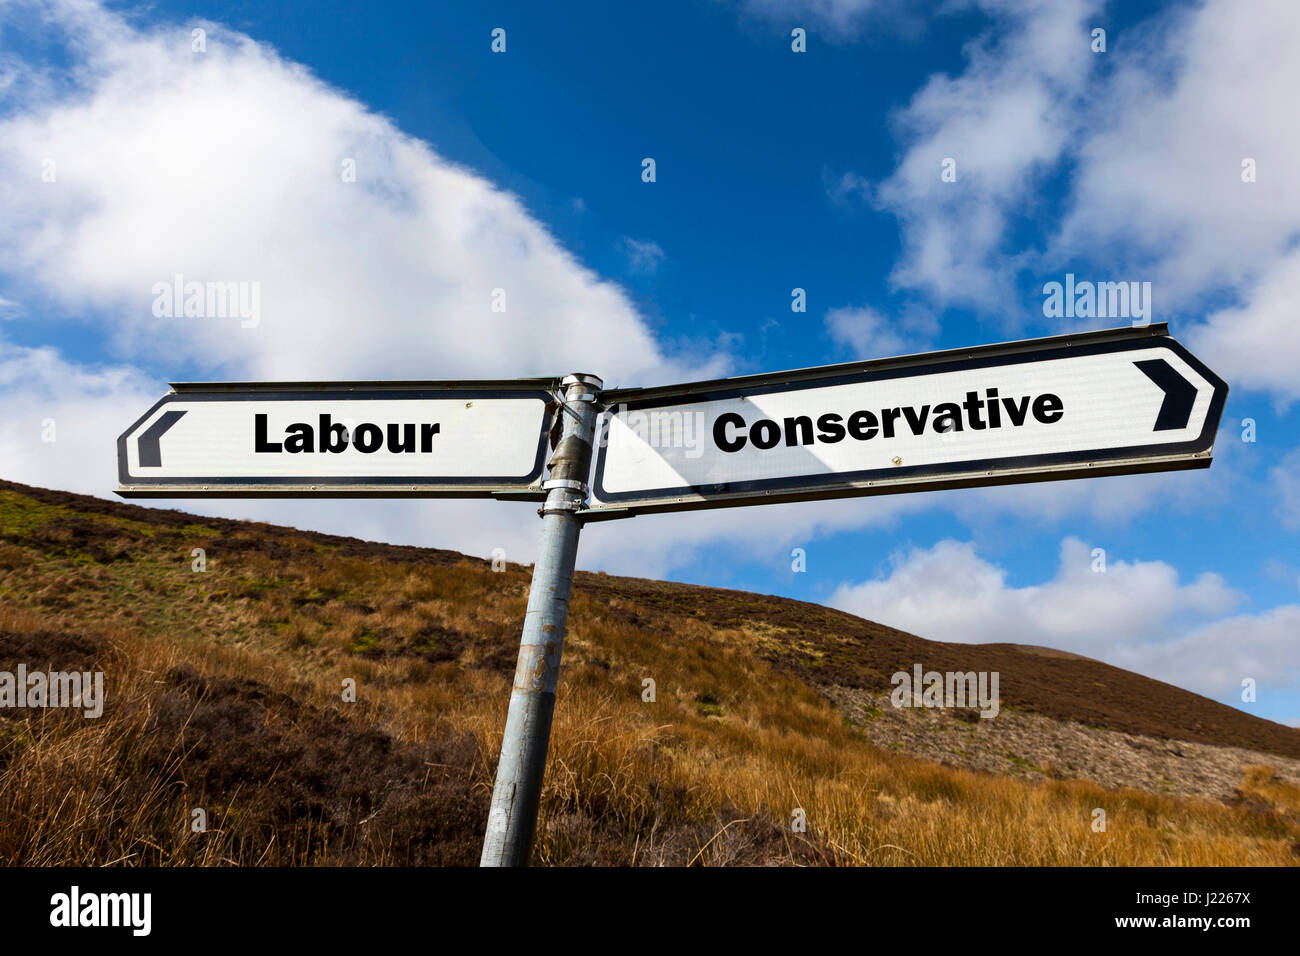 UK upcoming general election parties involved election parties UK political parties Labour conservative Ukip Lib - Stock Image